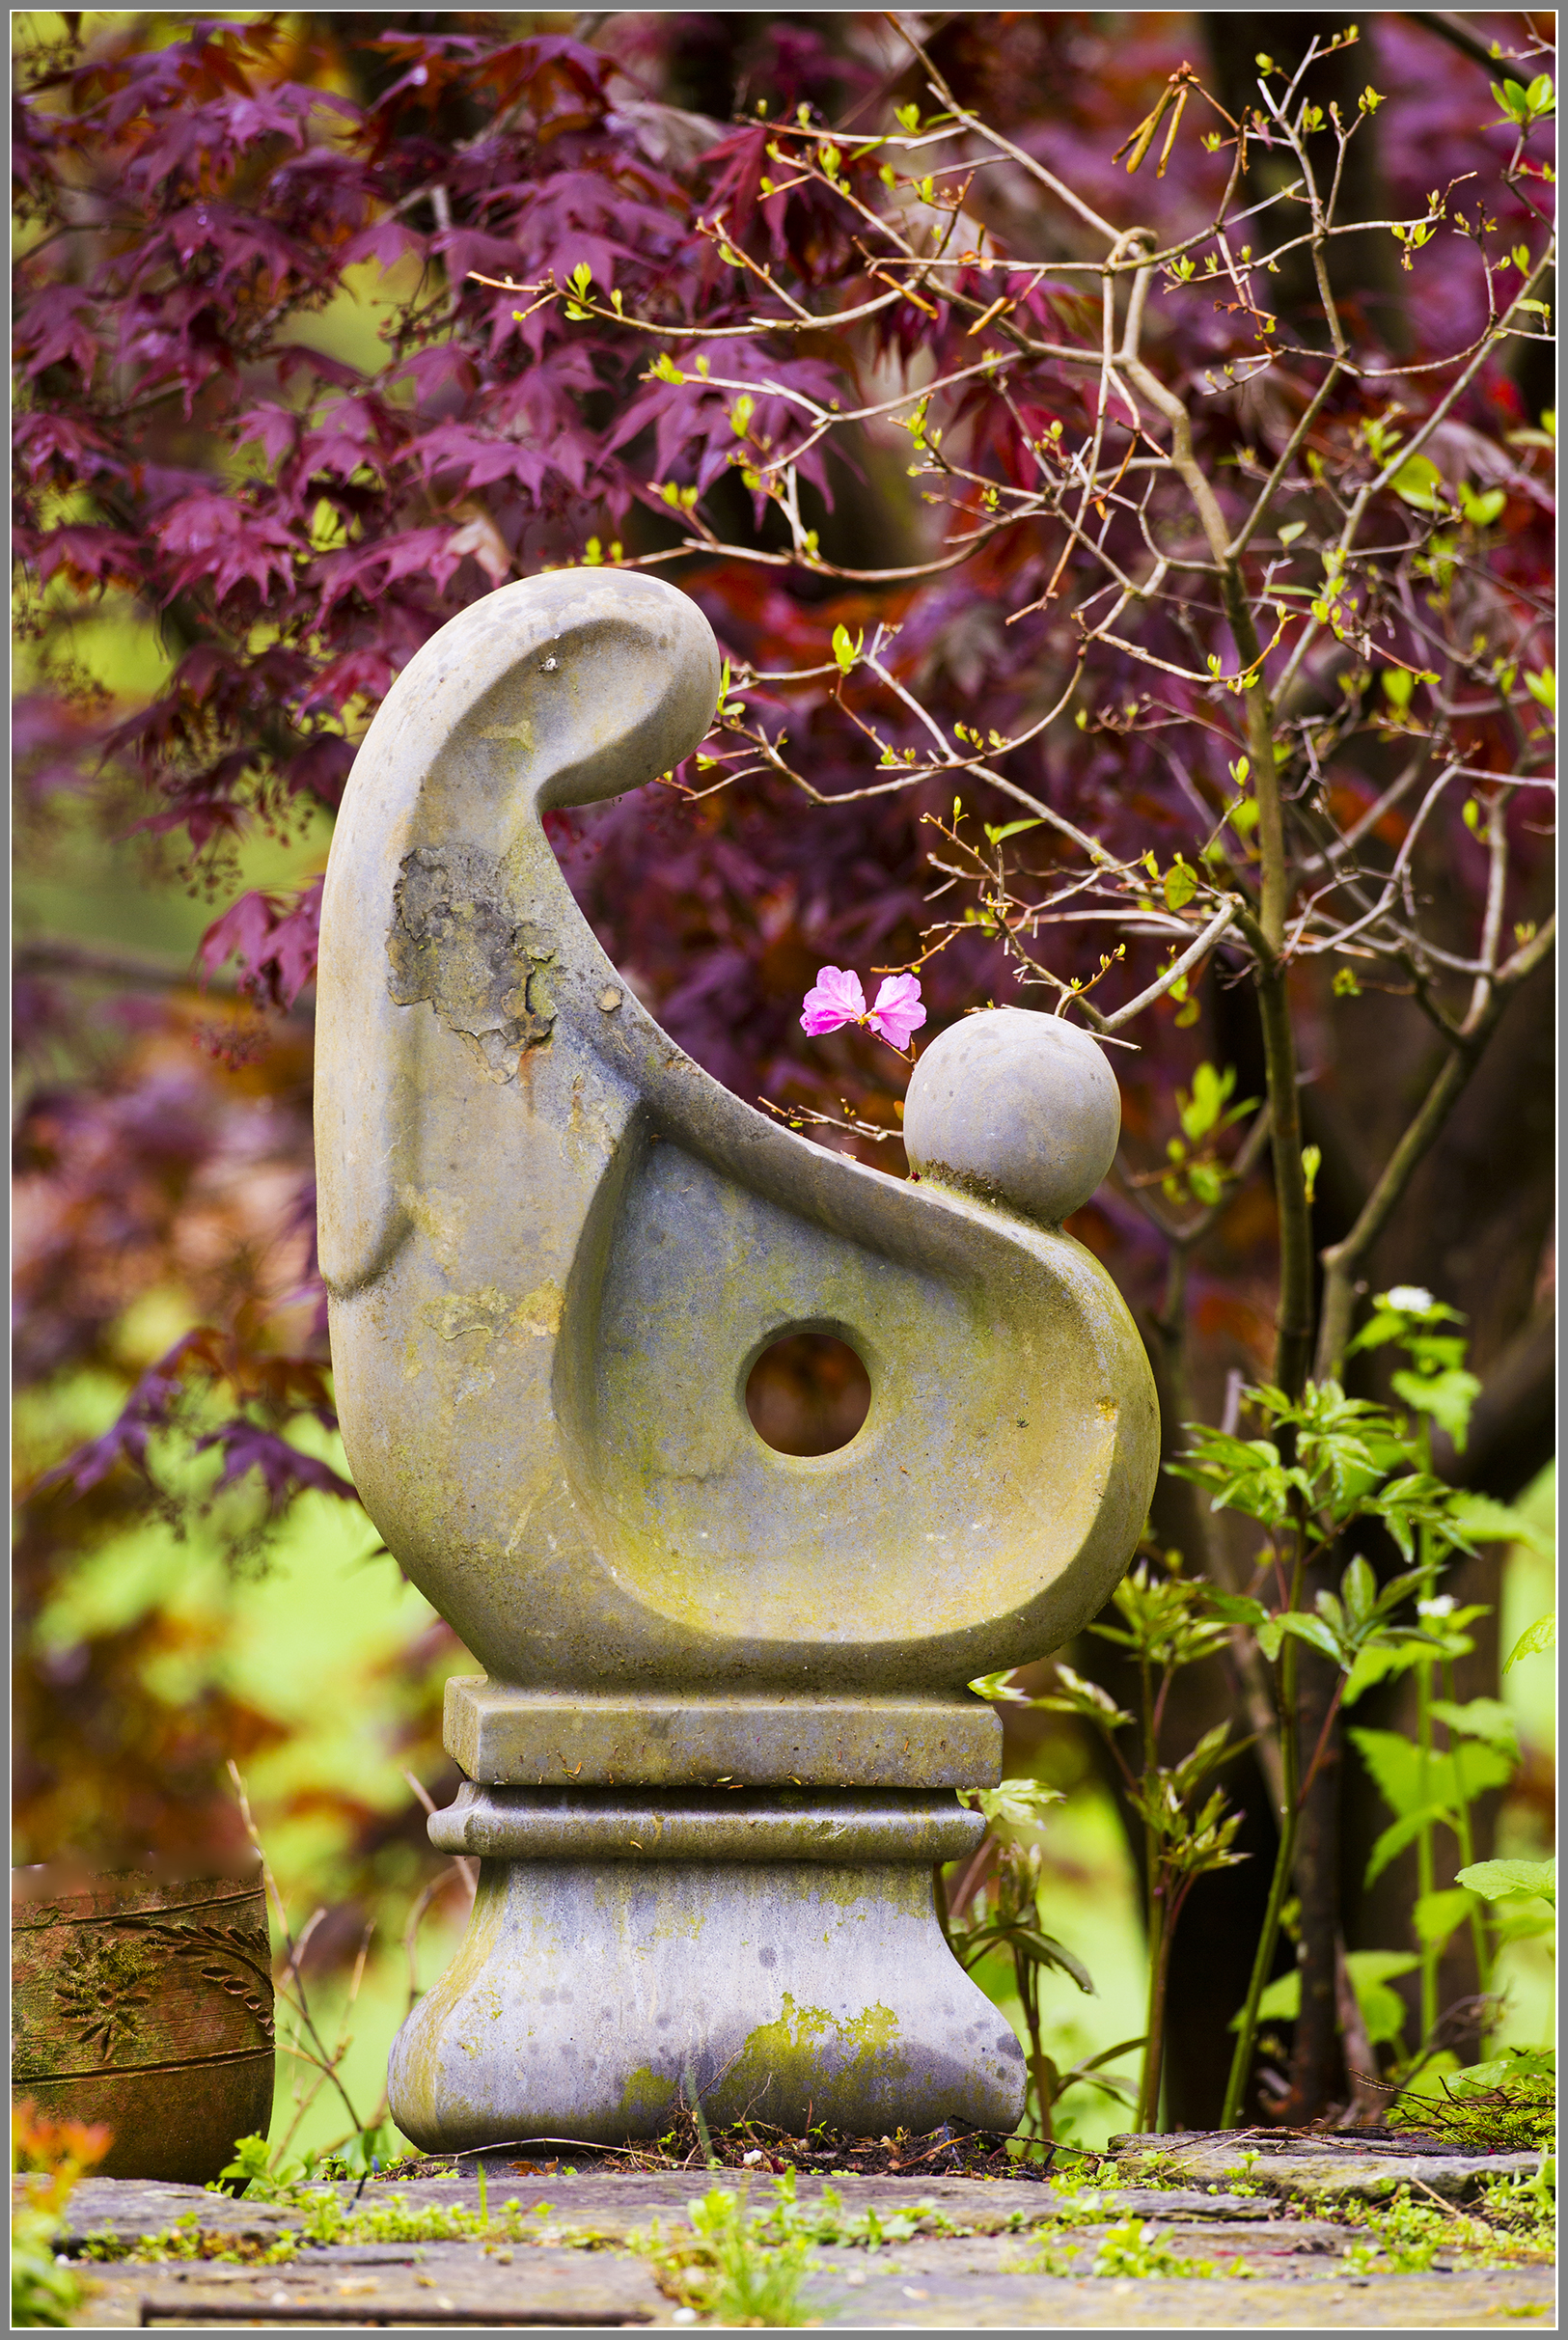 Stone sculpture in a garden